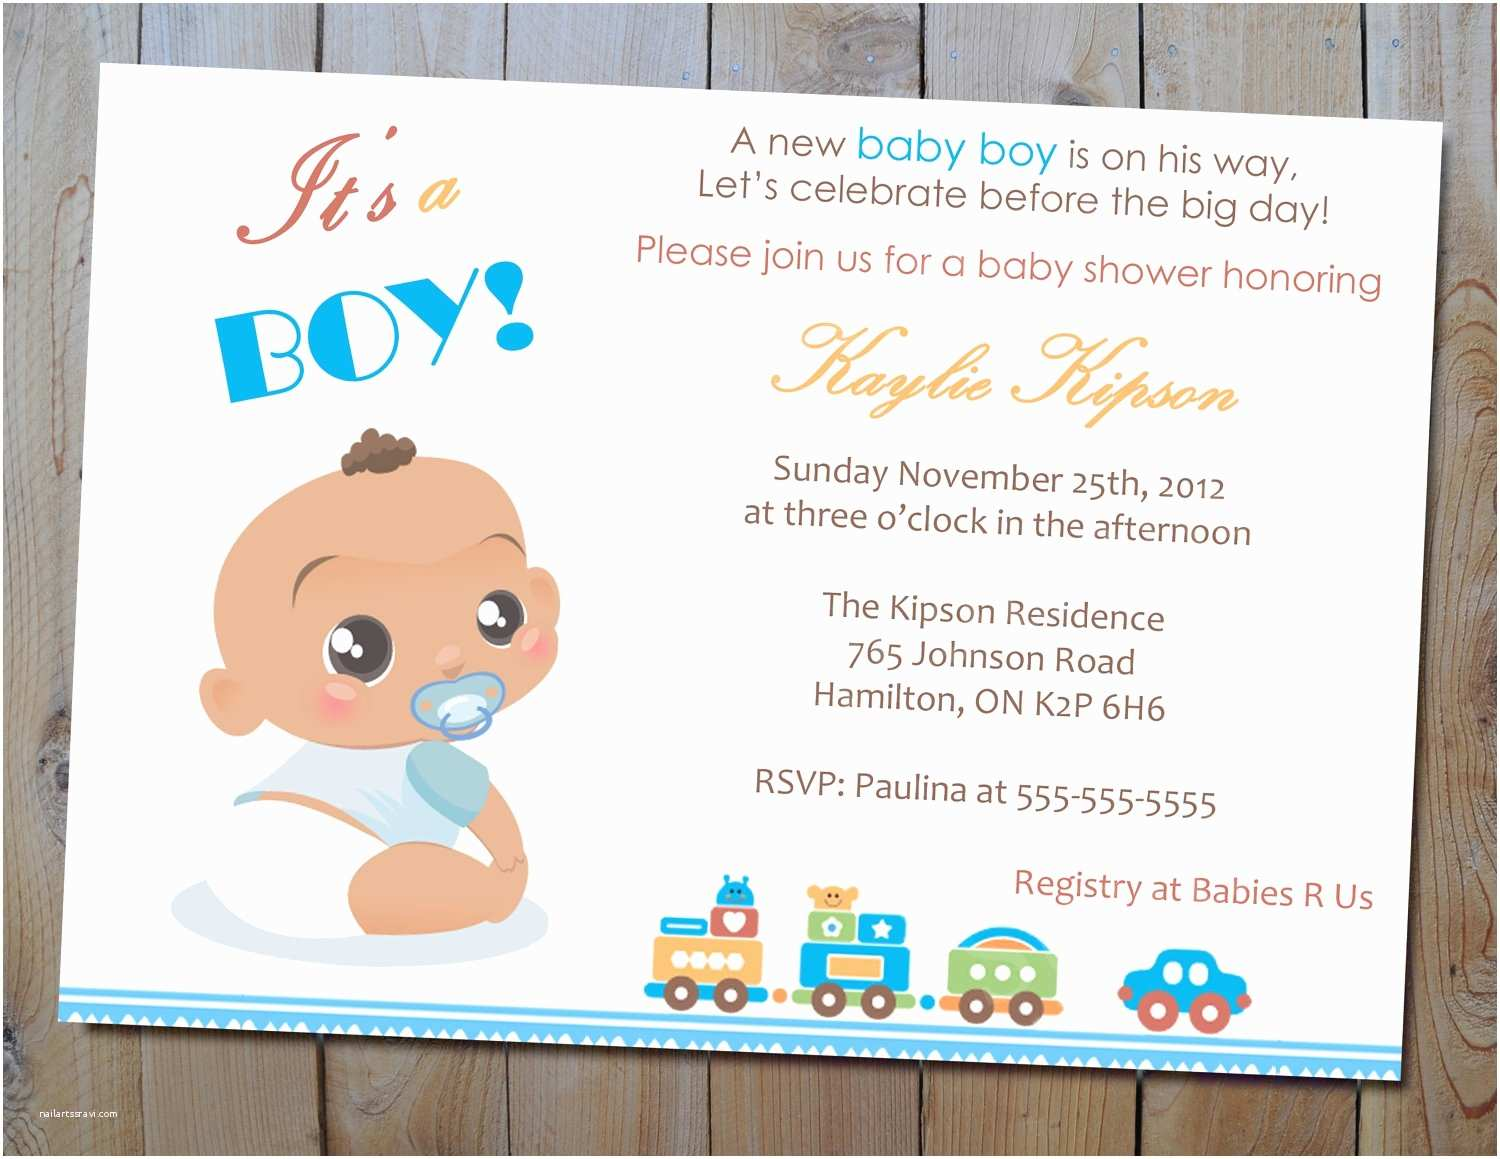 Personalized Baby Shower Invitations Invitations for Baby Shower Boy